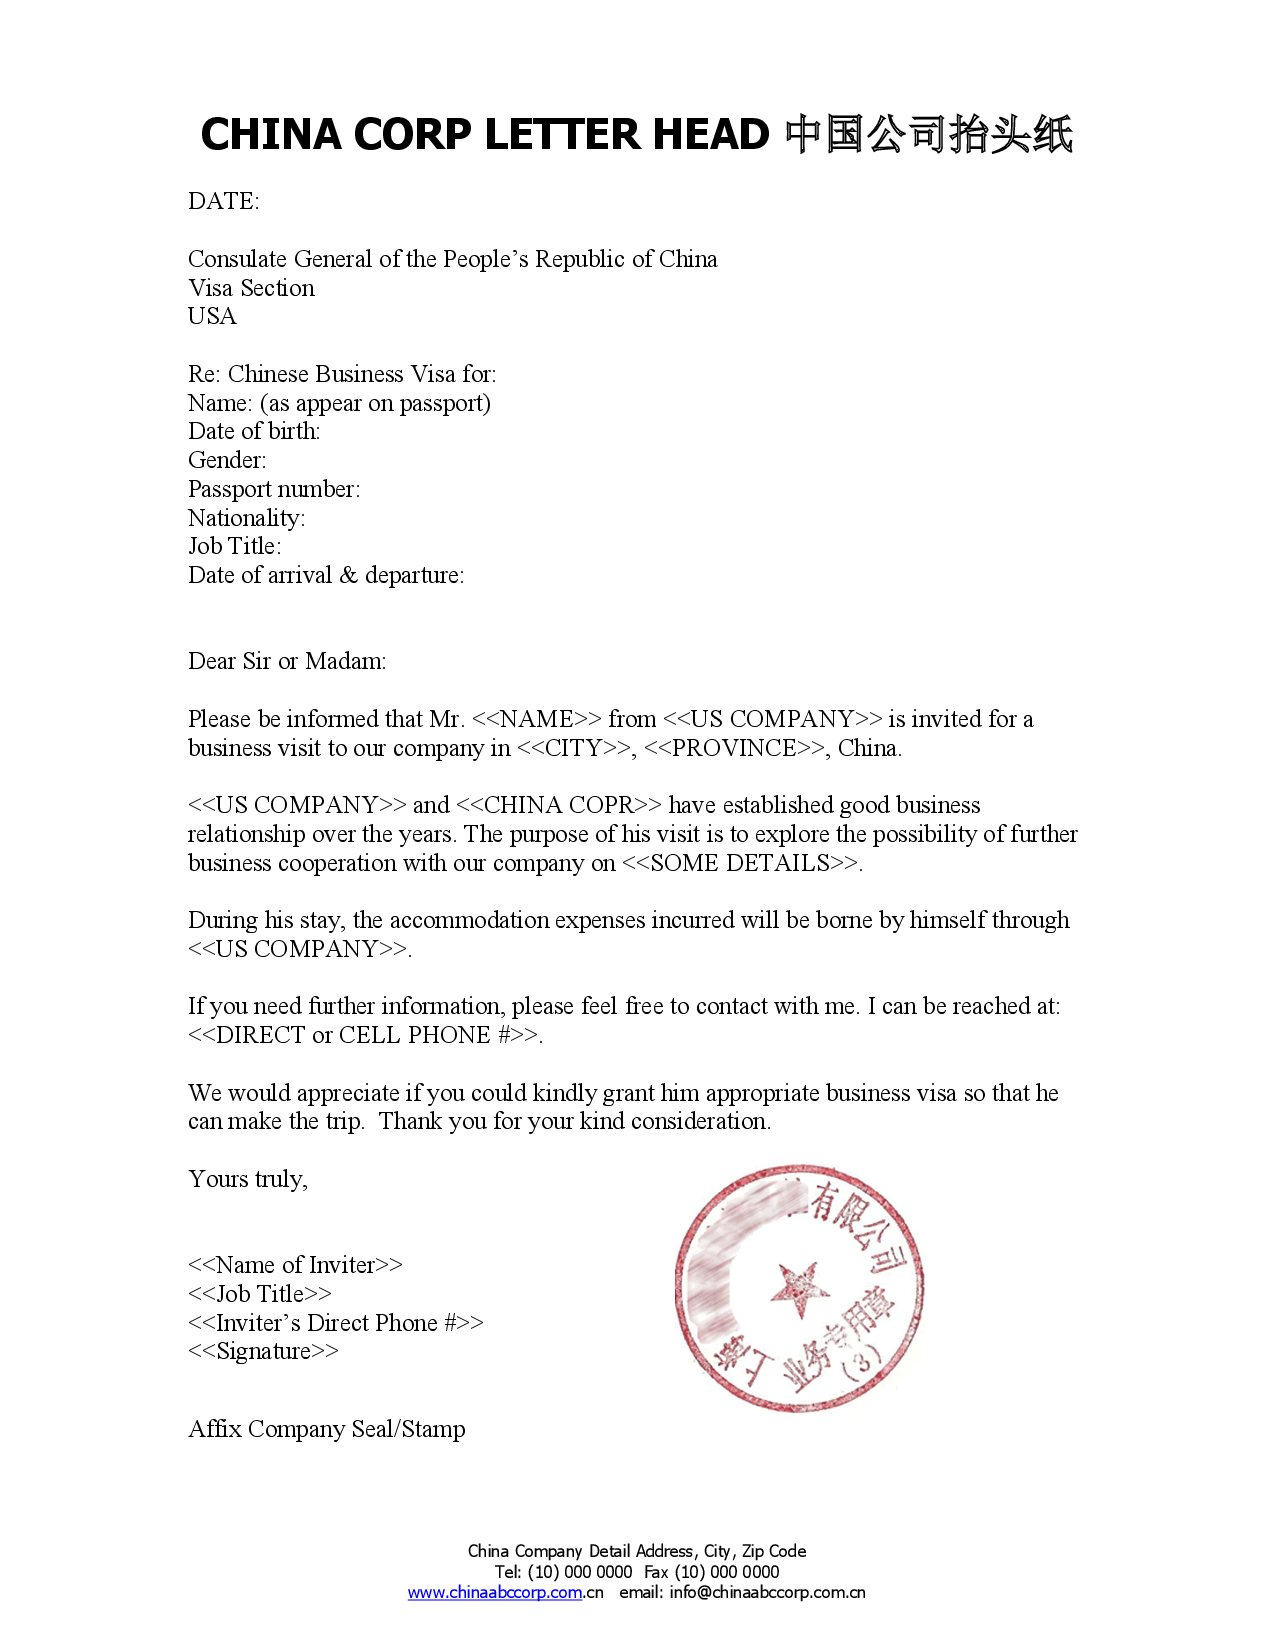 Format invitation letter for business visa to china lettervisa format invitation letter for business visa to china lettervisa invitation letter application letter sample thecheapjerseys Choice Image